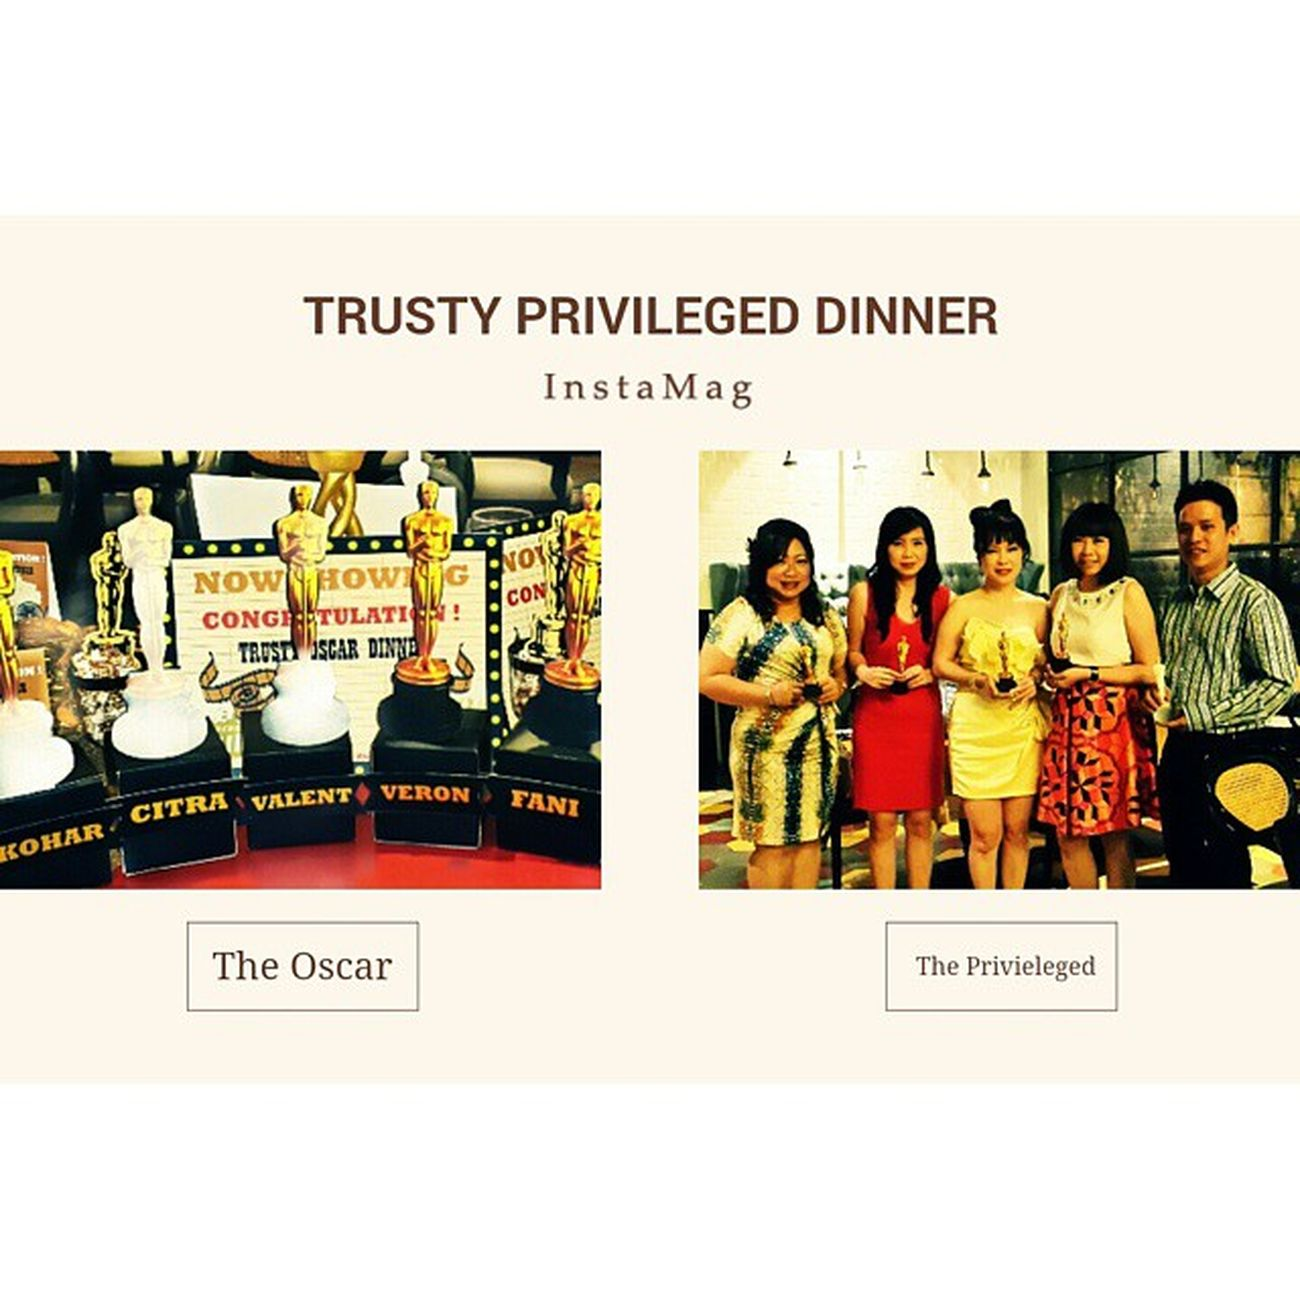 TrustyPrivilegedDinner TRUSTY Privileged AWARD Teamwork workstyle LifeStyle Traveller Photography 15 01 15